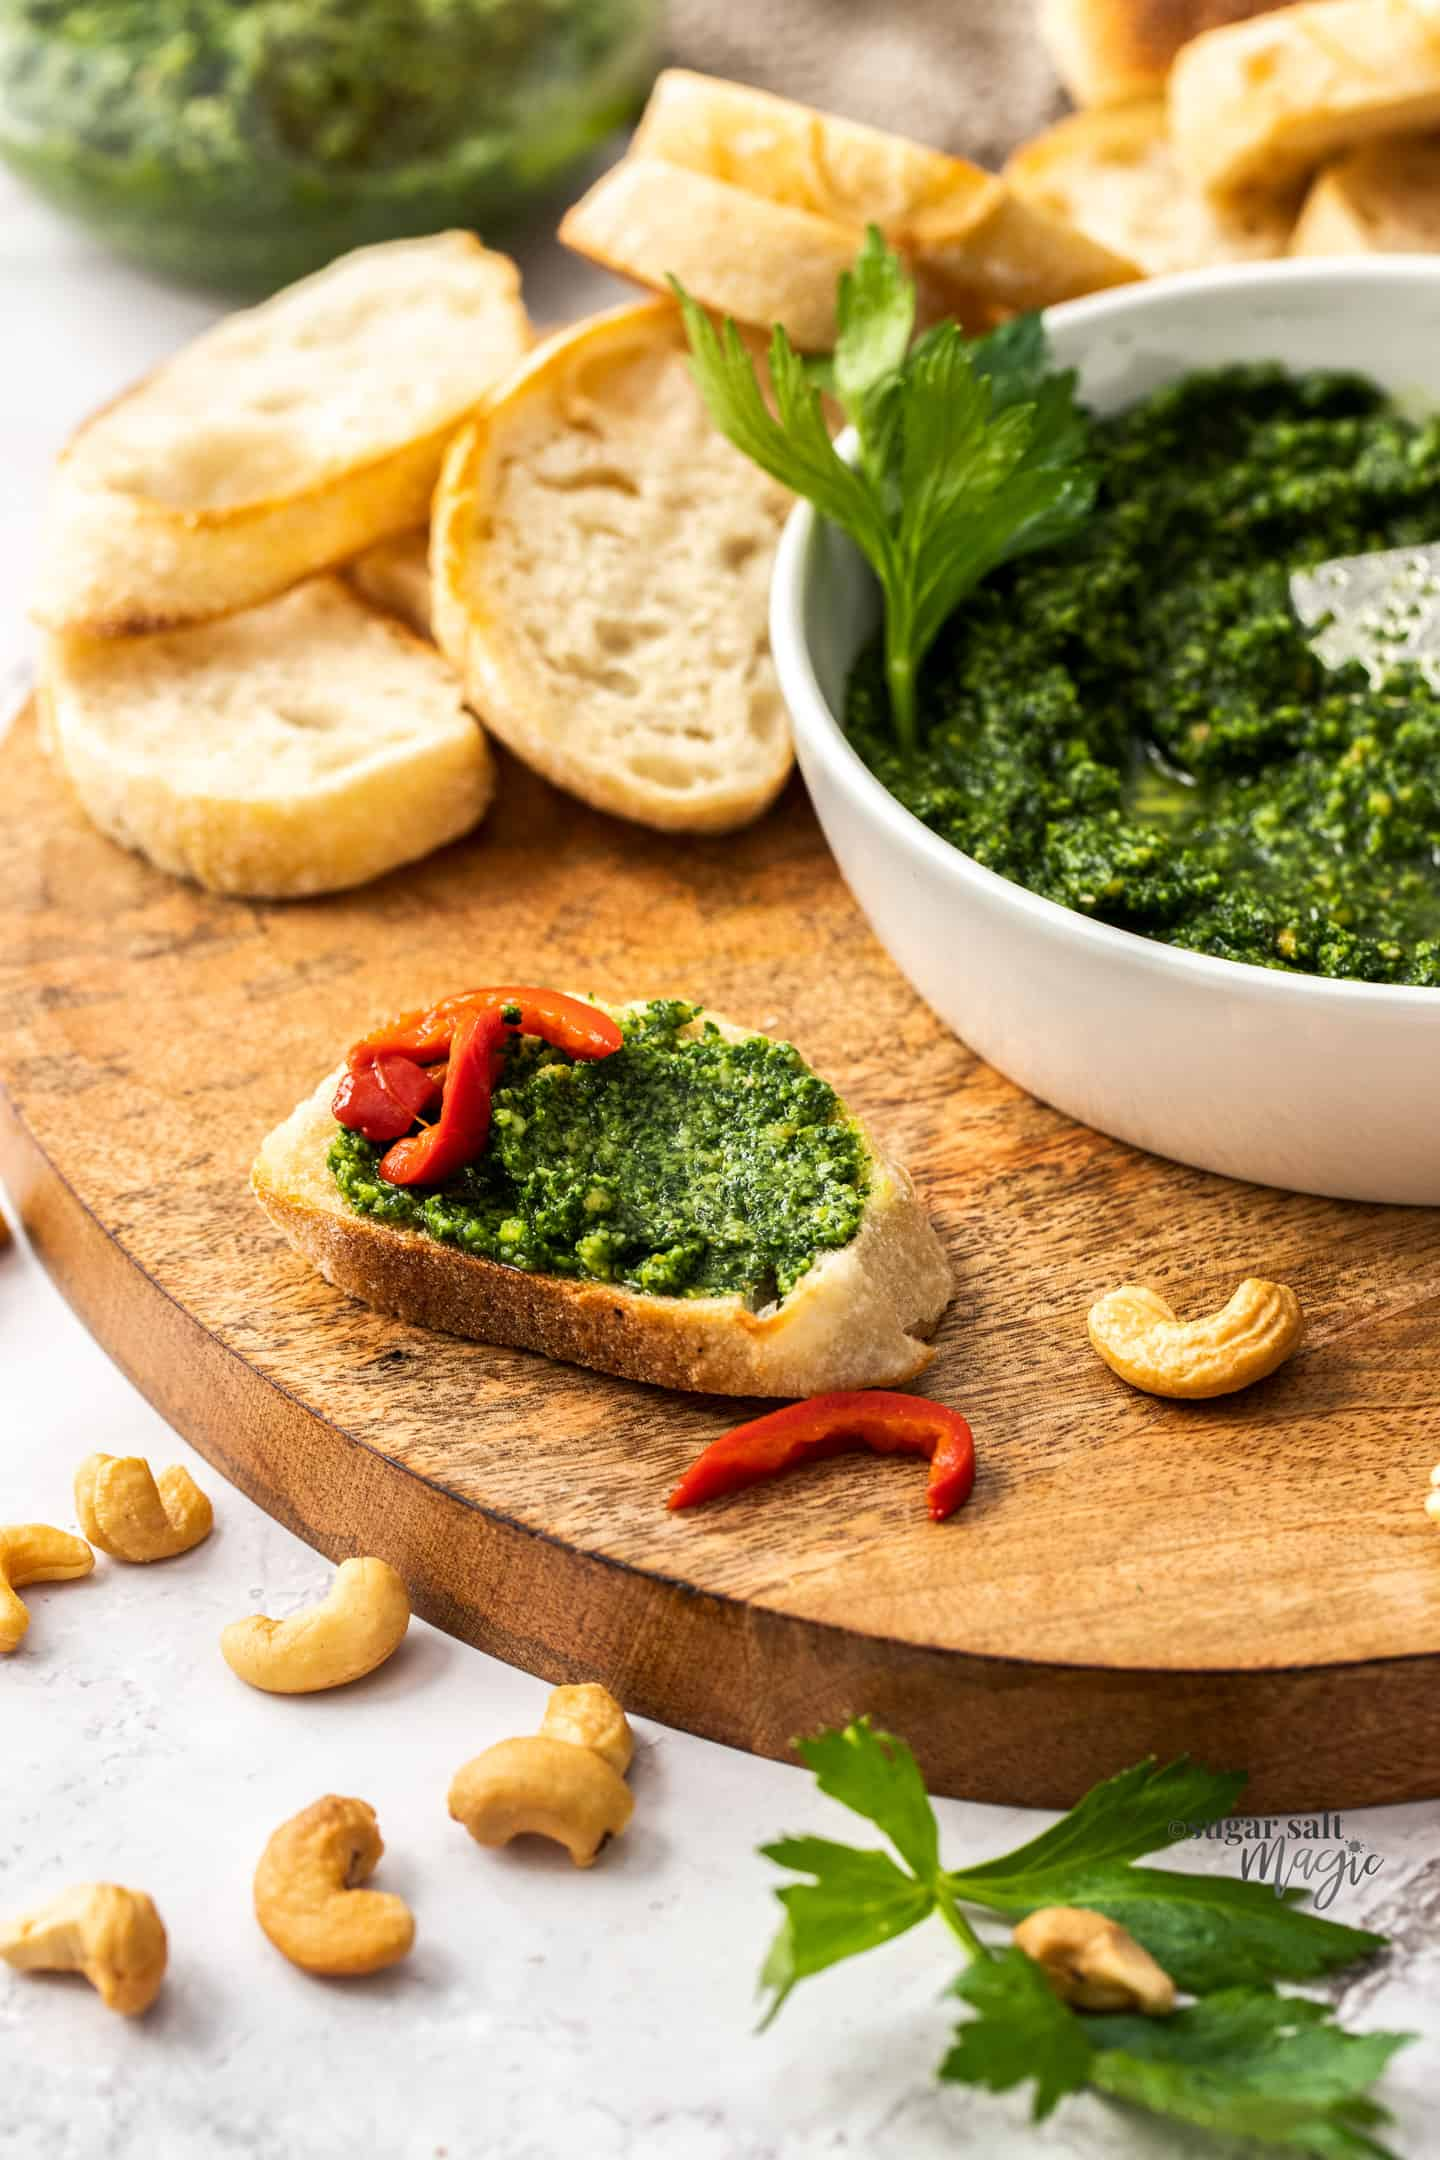 A small slice of baguette spread with celery leaf pesto.